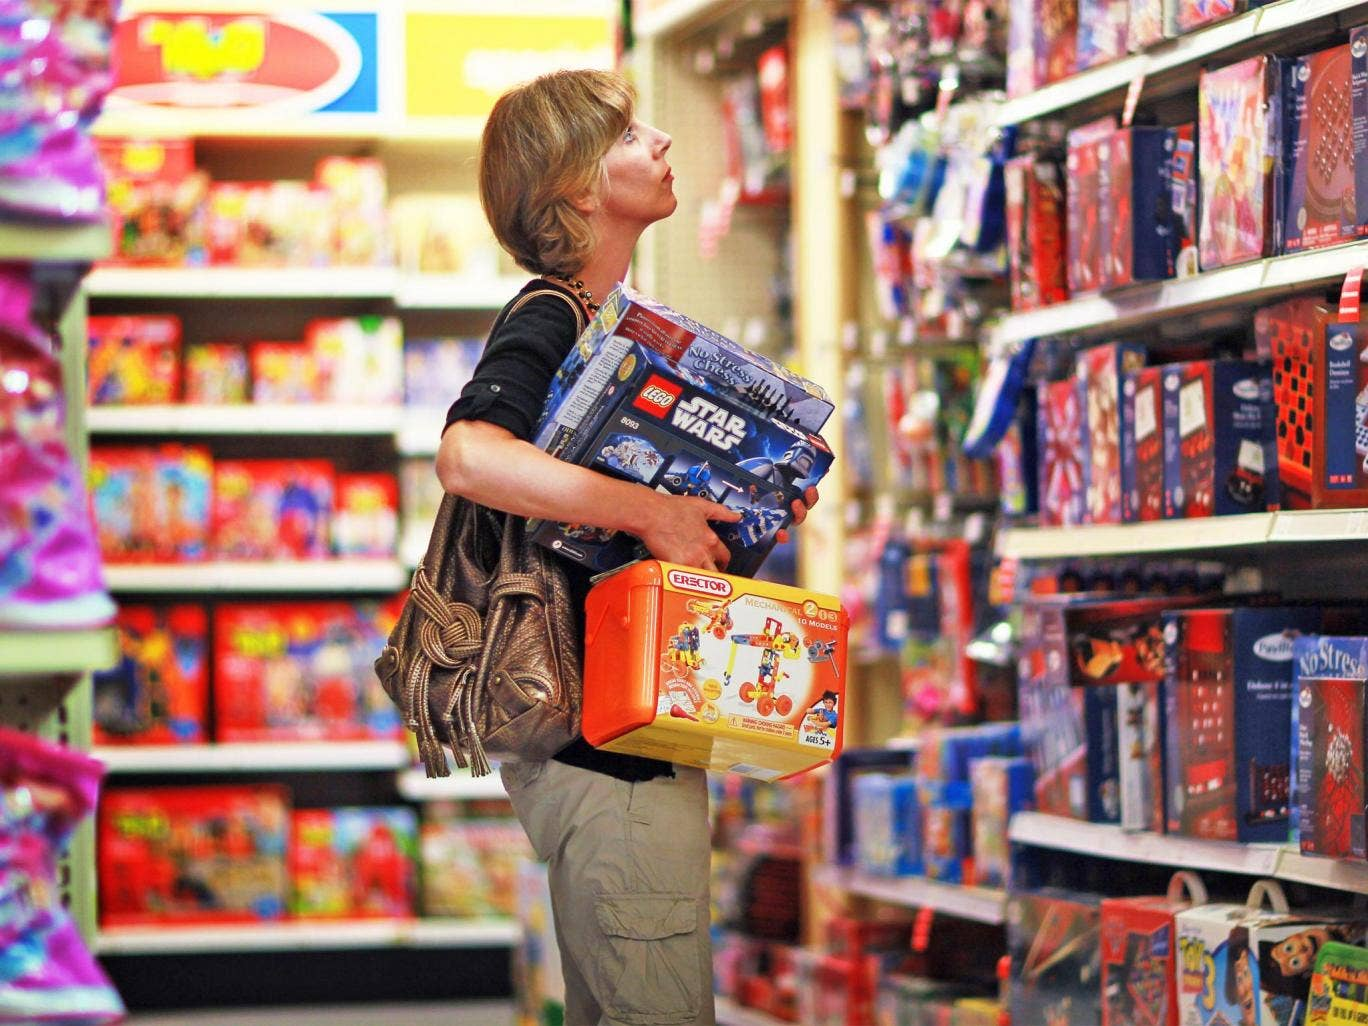 A shopper browses a Toys R Us store